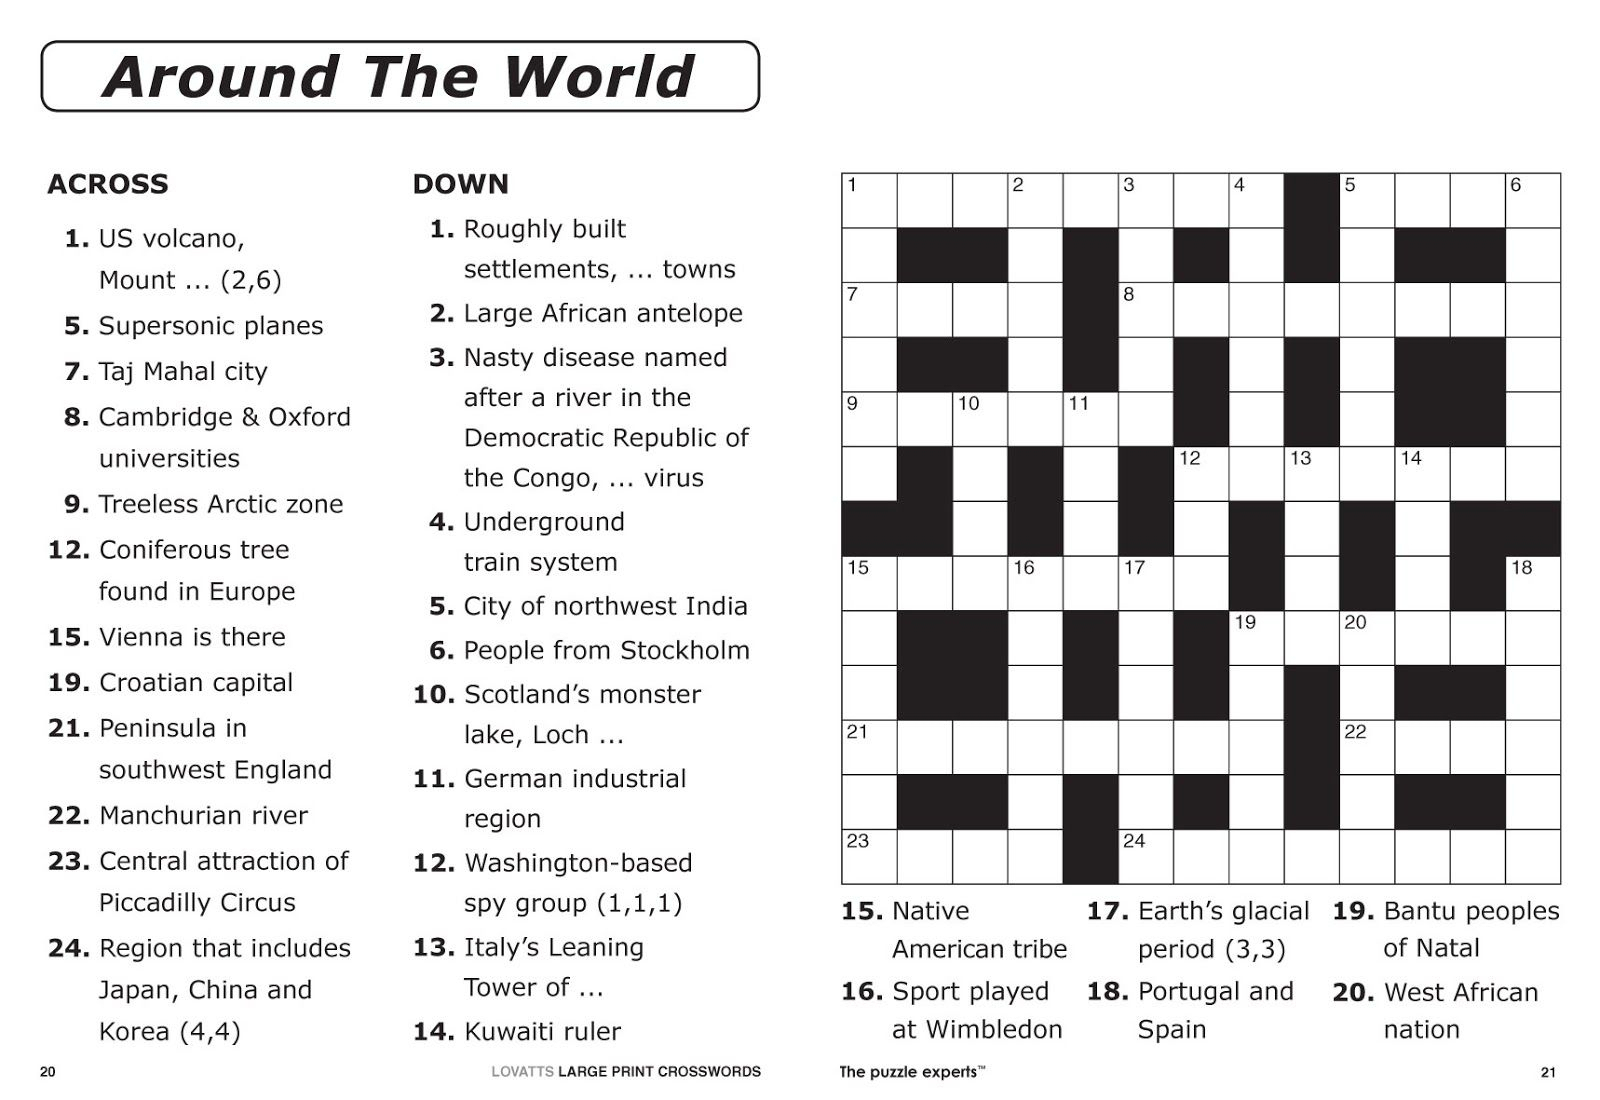 Free Printable Large Print Crossword Puzzles | M3U8 - You Magazine Printable Crossword Puzzles